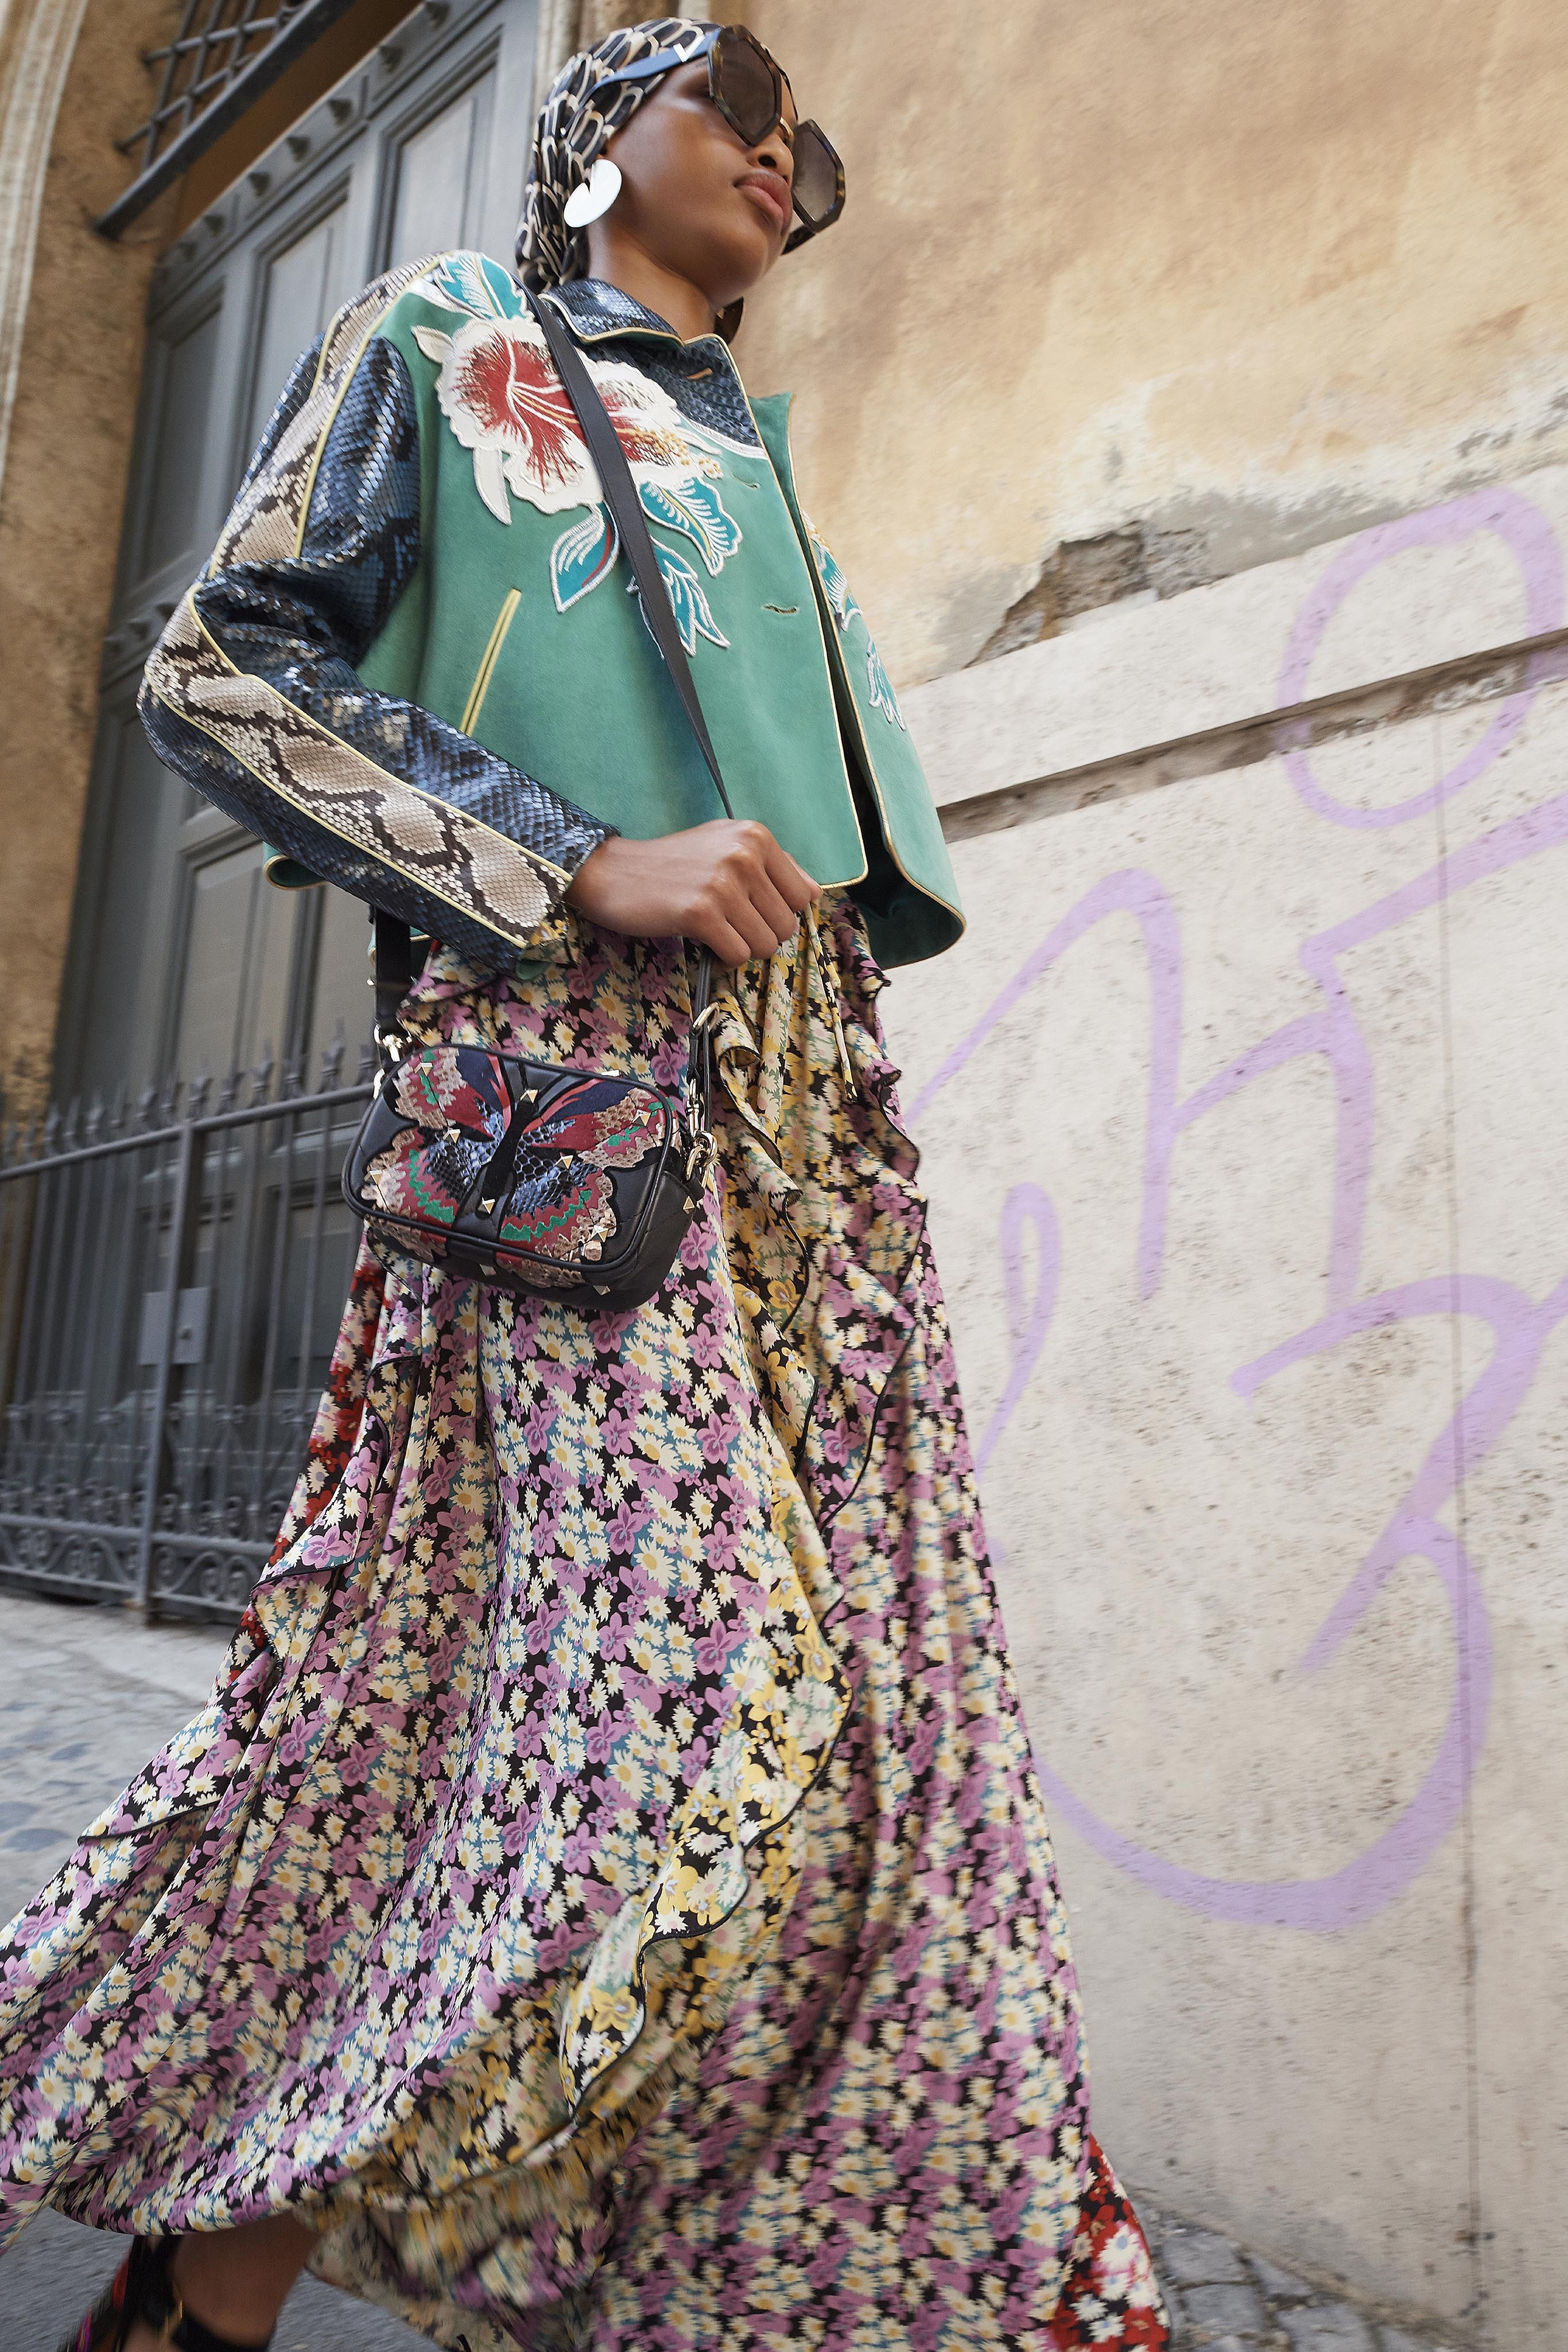 fe5cbe545741 Valentino Resort 2019 New York Collection - Vogue inspired by 70s fashion  styles